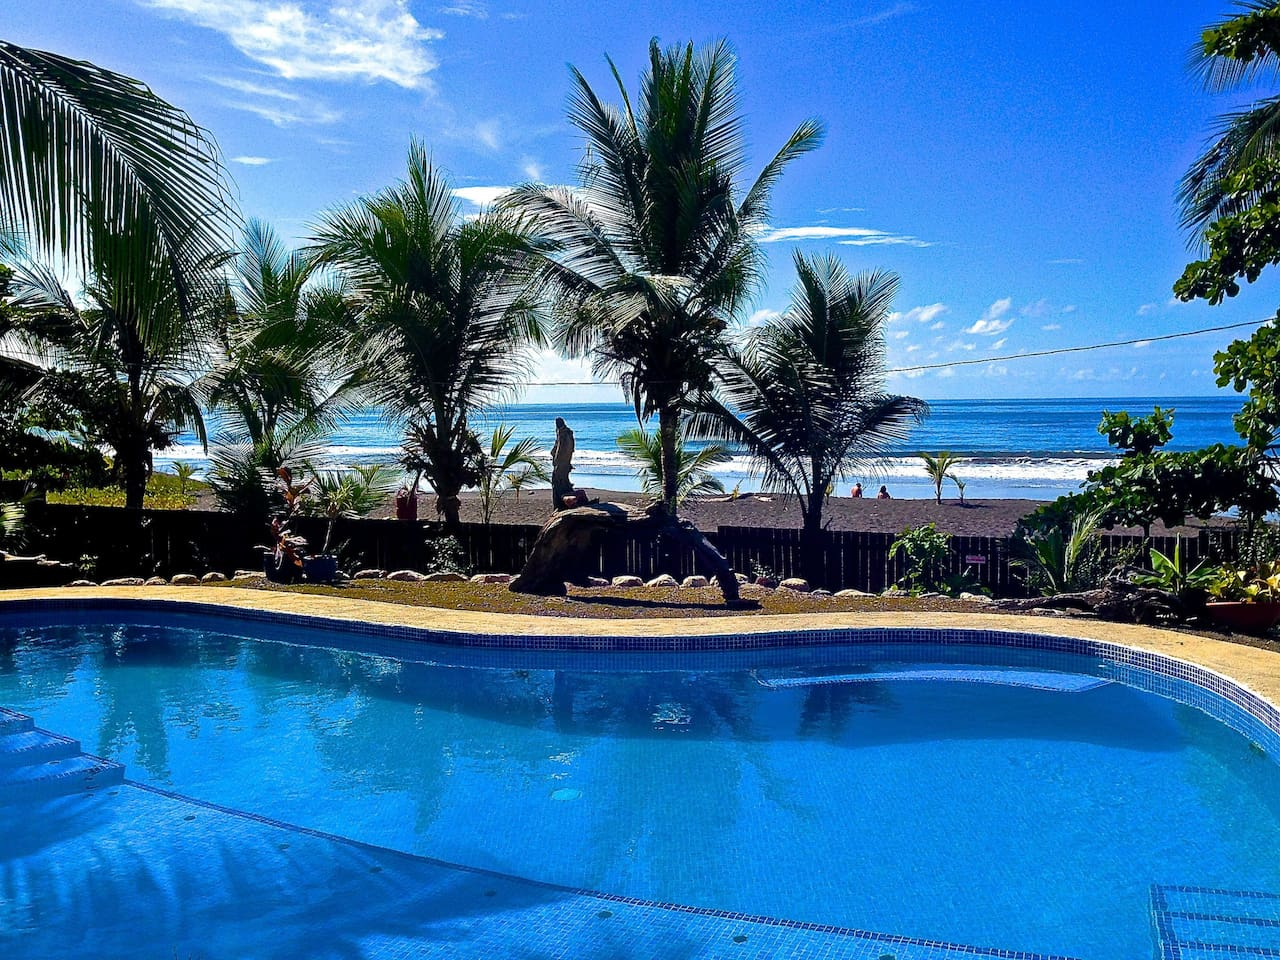 Enjoy endless views of the Pacific ocean right from your own private pool!